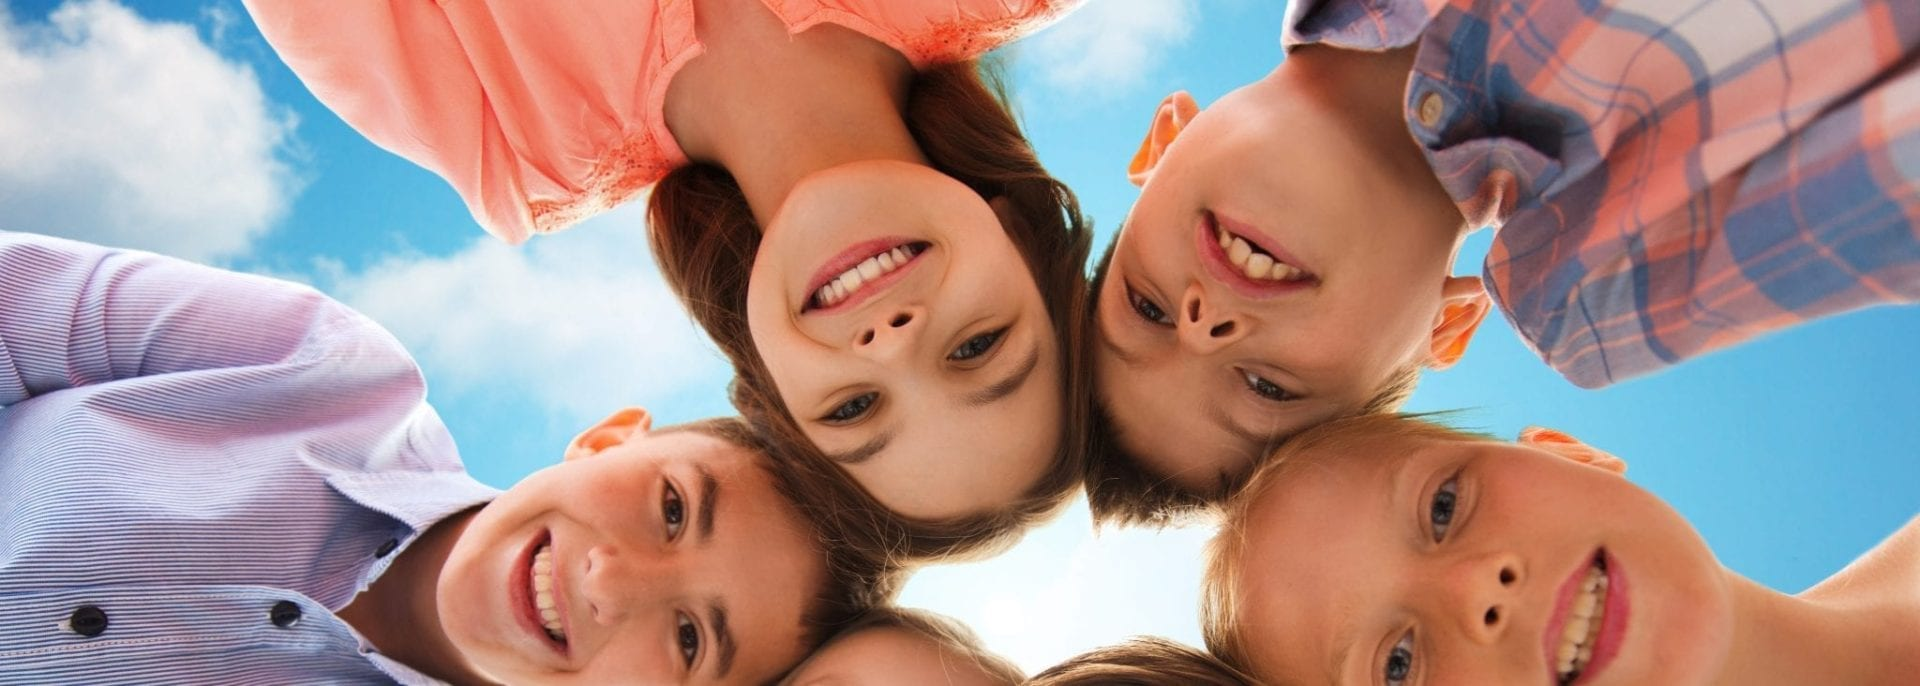 6 children looking down at camera smiling - News